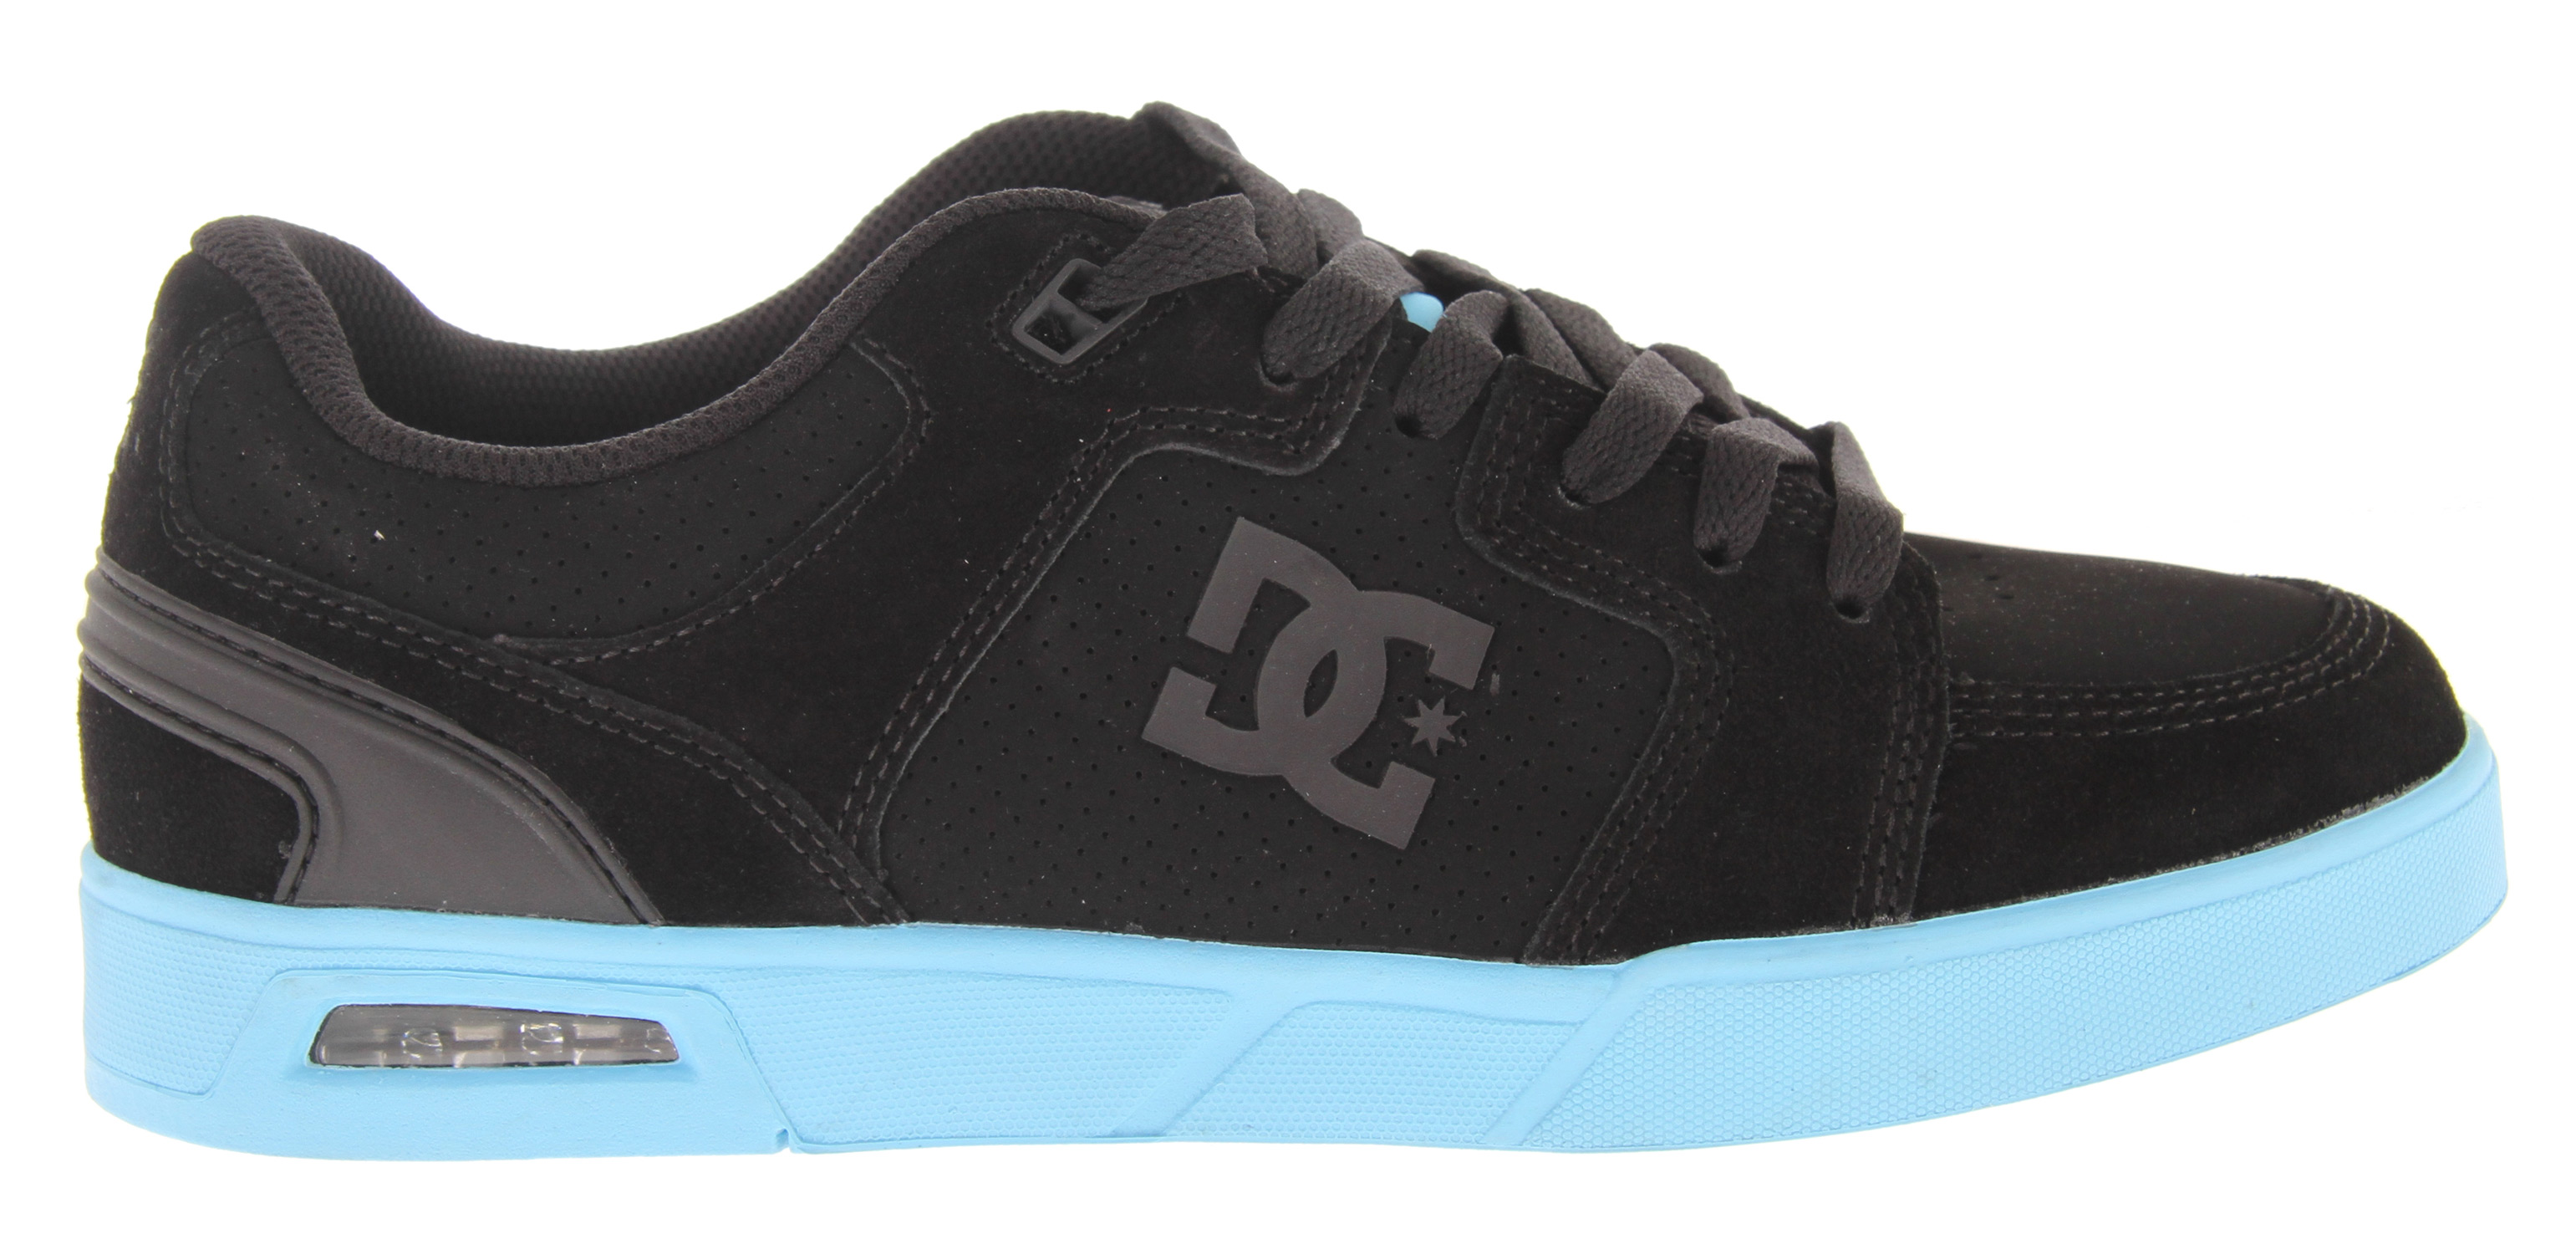 Skateboard Key Features of the DC Monty Skate Shoes: Clean cupsole construction with visible heel airbag Traditional skate paneling in the upper Foam padded tongue and collar for added comfort Molded heel counter for support and style - $35.96